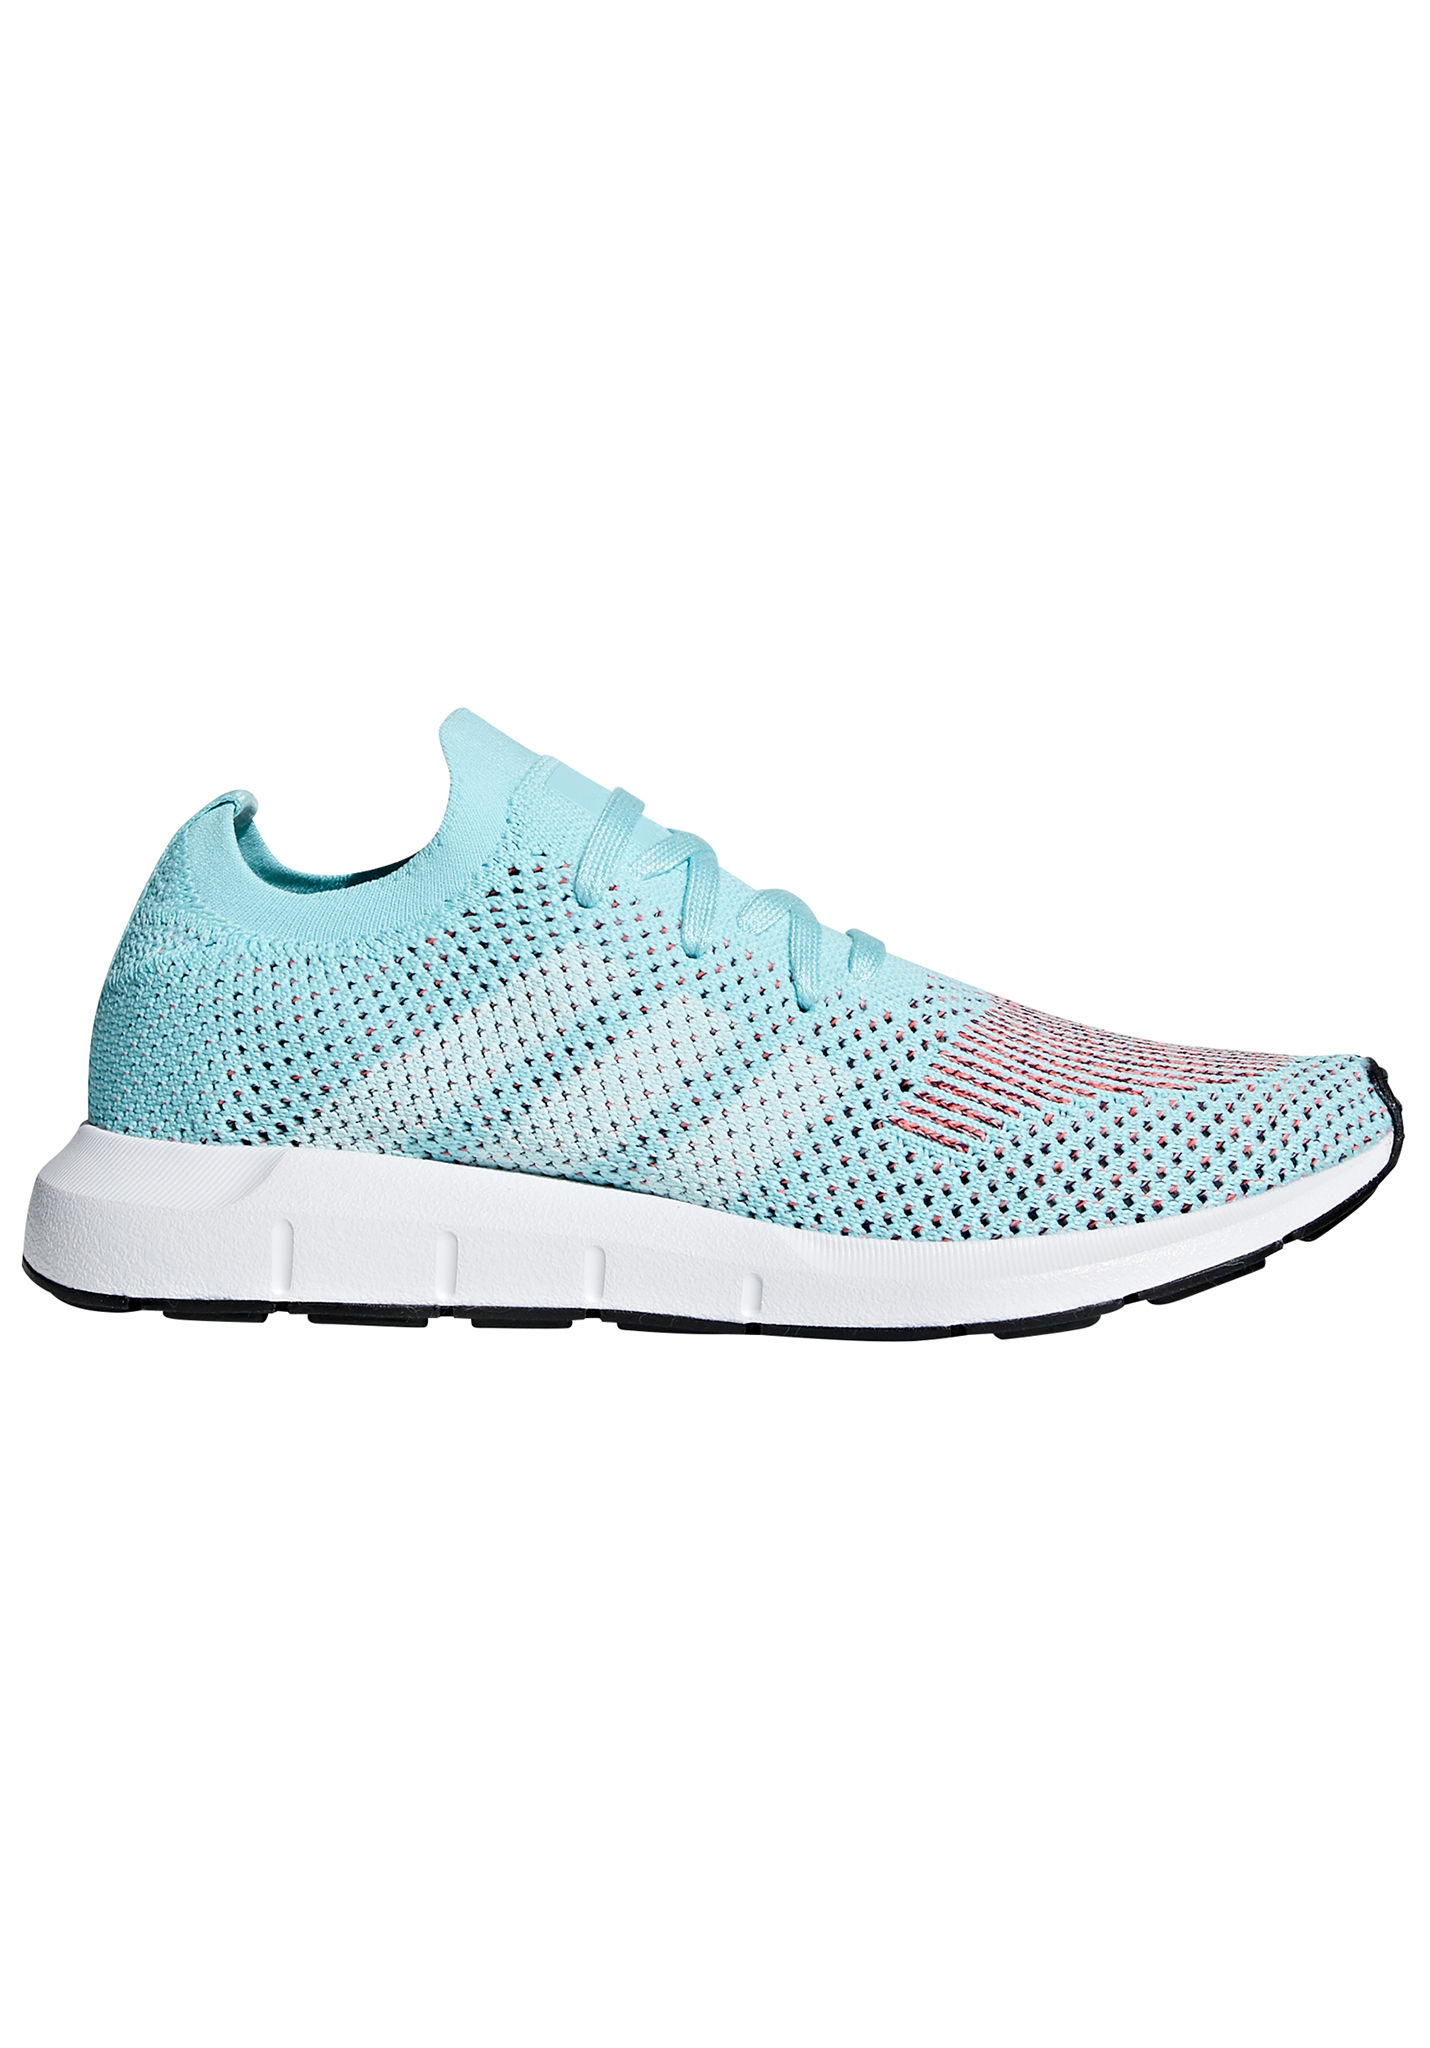 adidas Originals Swift Run Pk - Sneaker für Damen - Blau